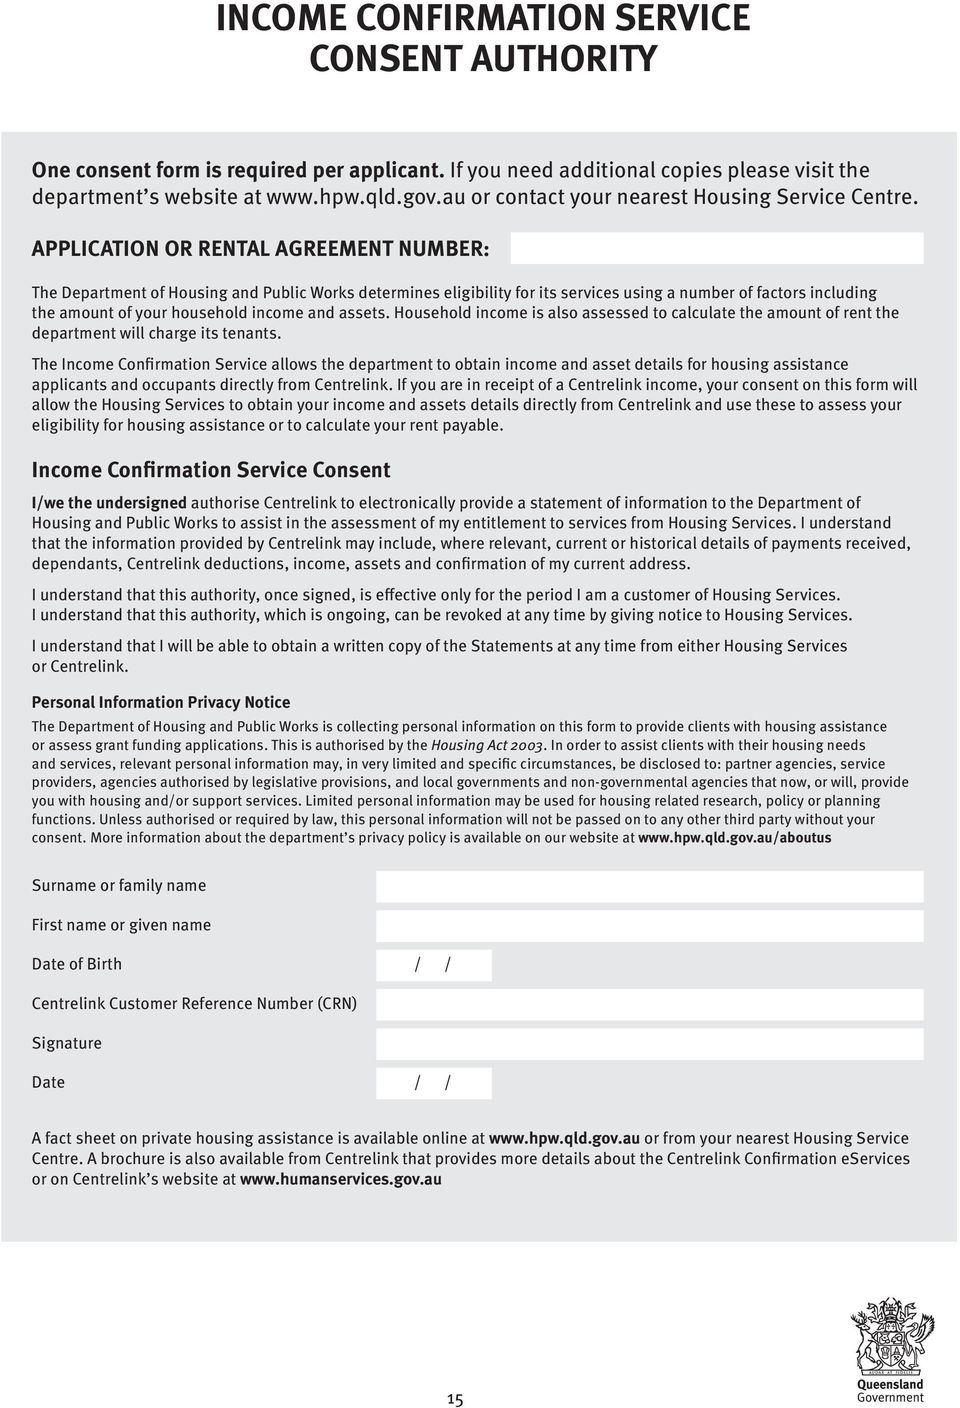 APPLICATION OR RENTAL AGREEMENT NUMBER: The Department of Housing and Public Works determines eligibility for its services using a number of factors including the amount of your household income and